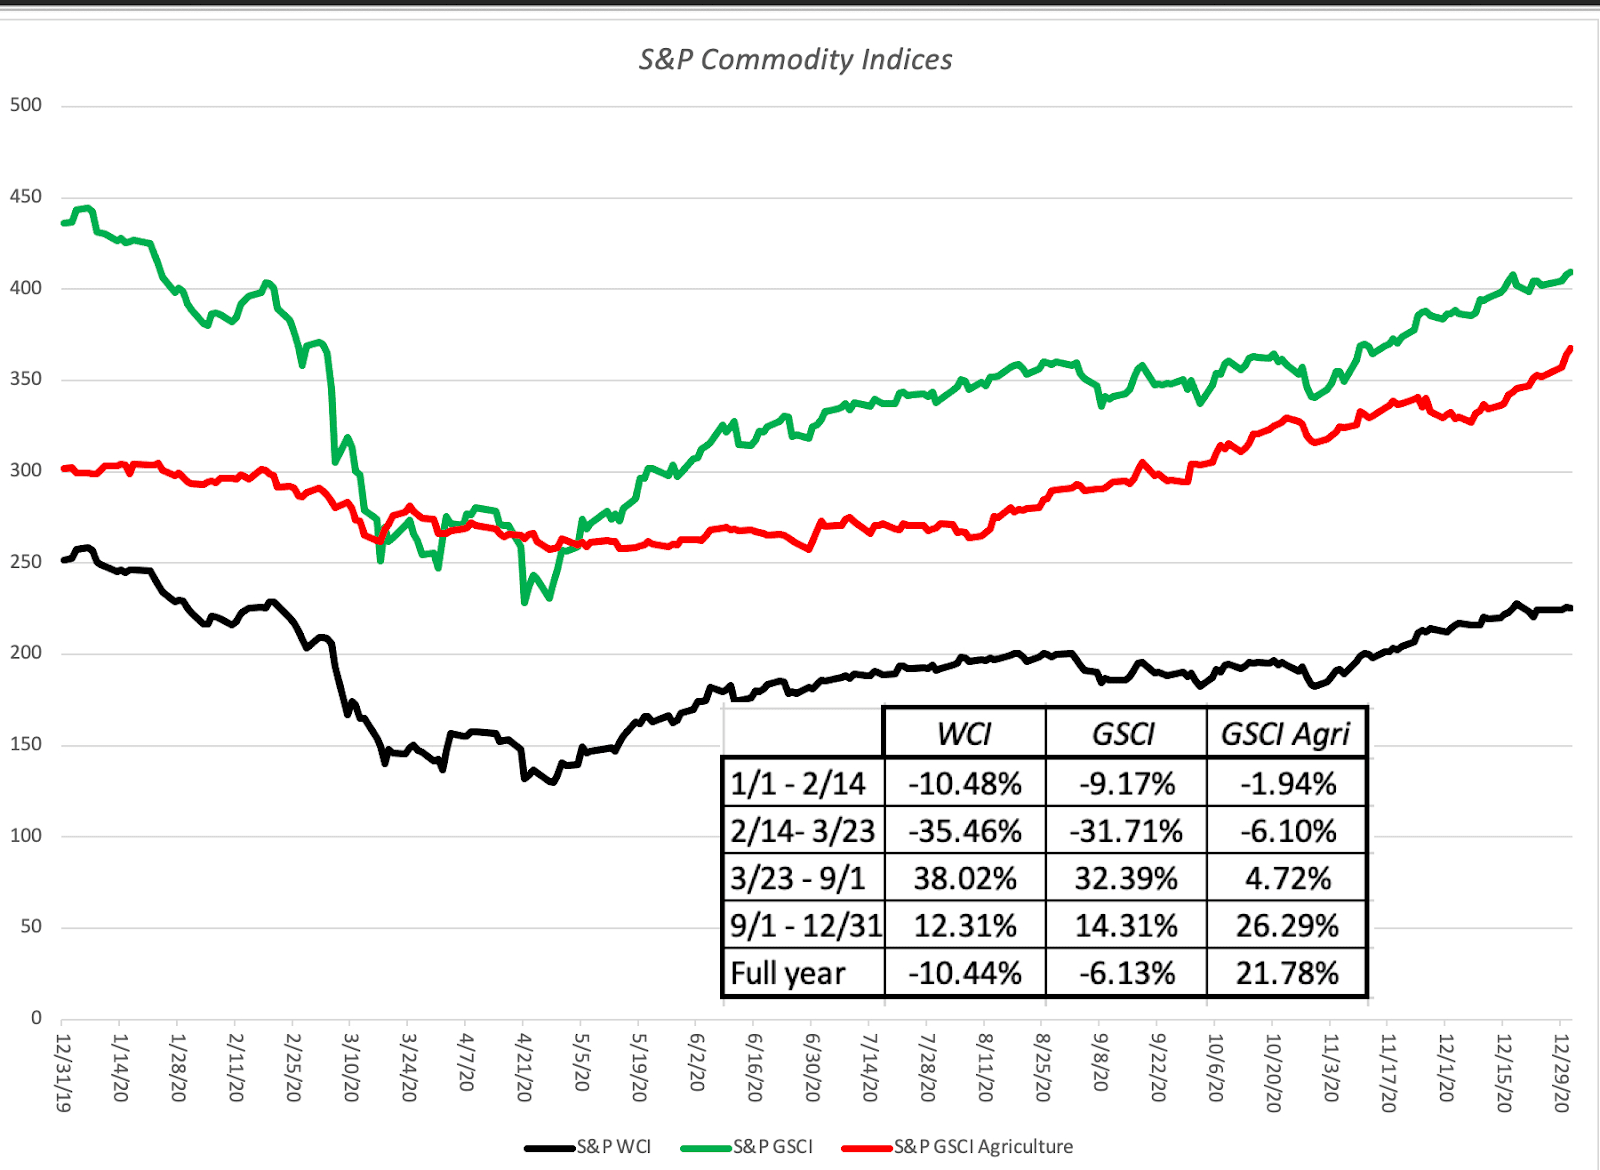 S&P Commodity Indices